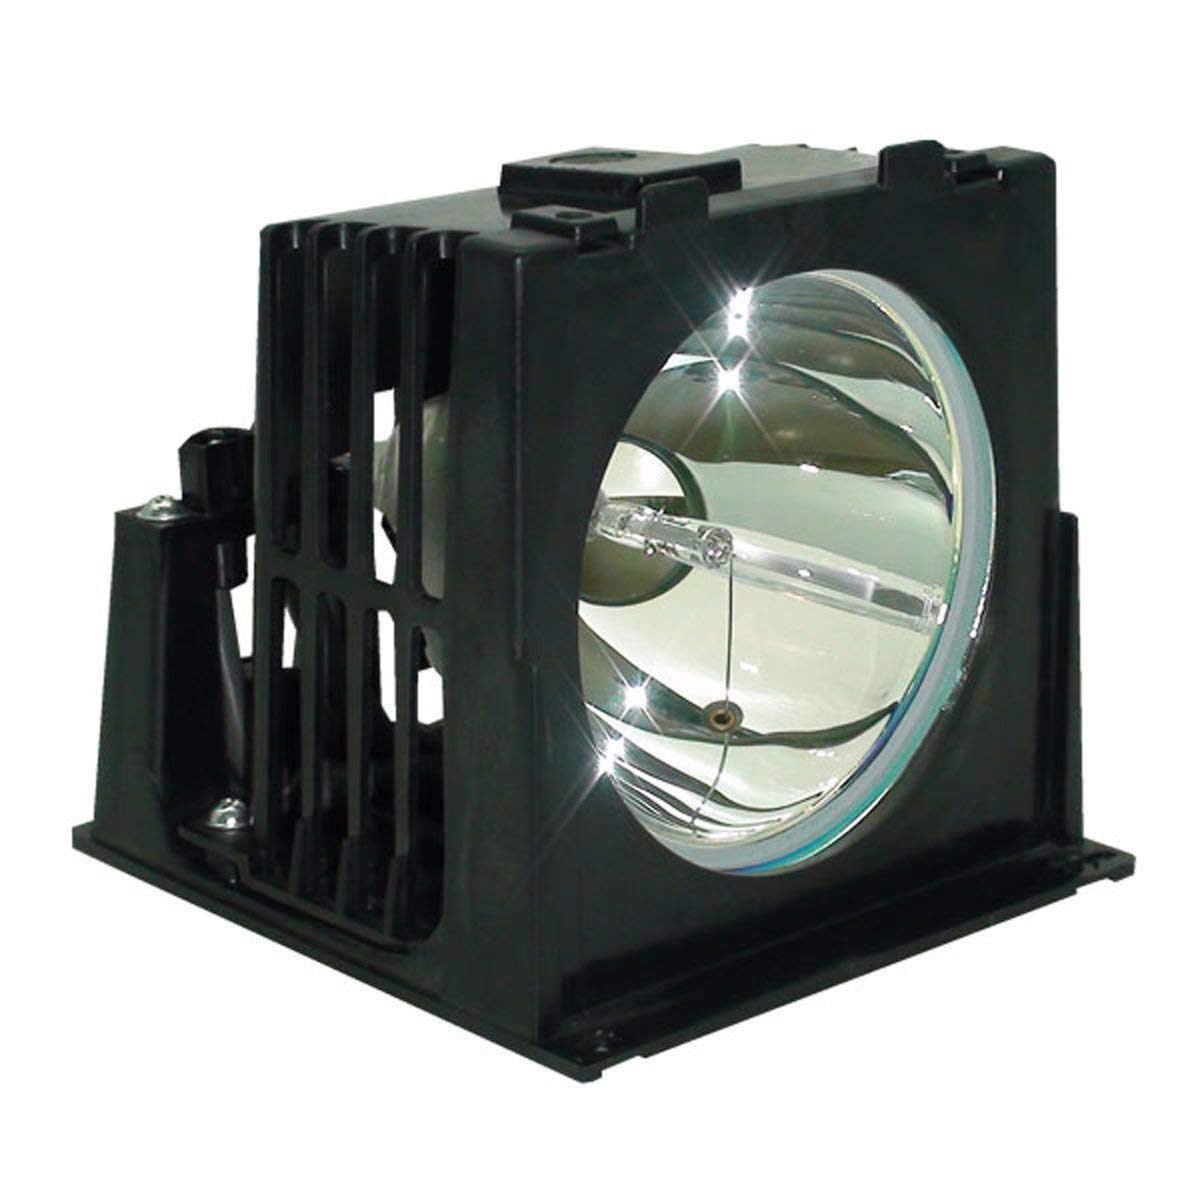 Original 915P026010 Replacement TV Lamp with Housing for Mitsubishi (Powered by Philips) by PHO